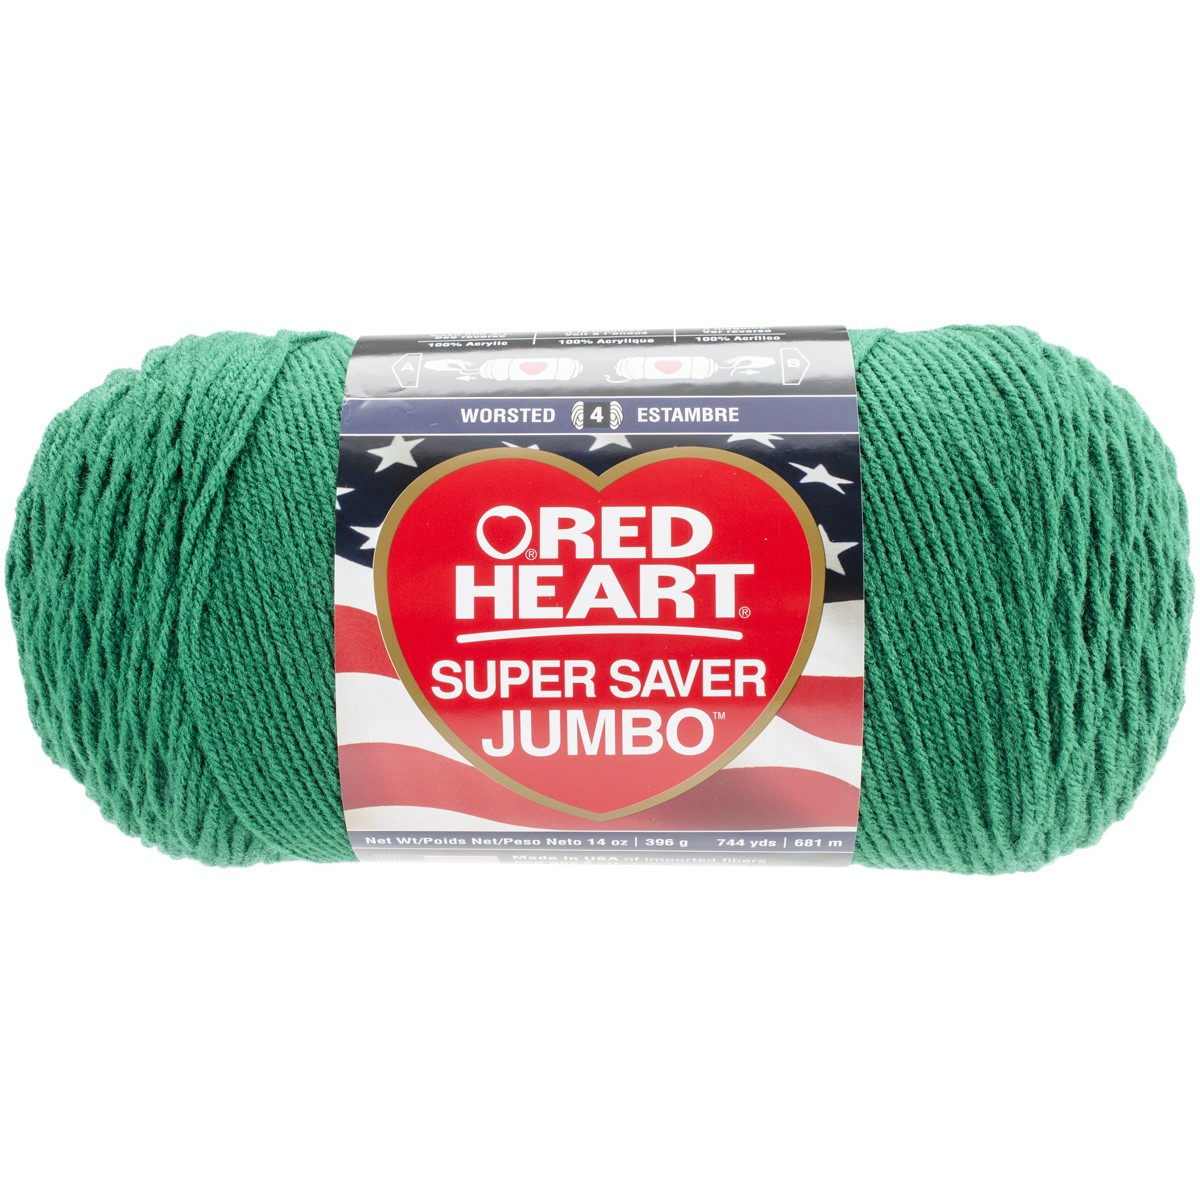 Beautiful Red Heart Super Saver Jumbo Yarn 14 Oz Available In Red Heart Jumbo Yarn Of Awesome 41 Pictures Red Heart Jumbo Yarn